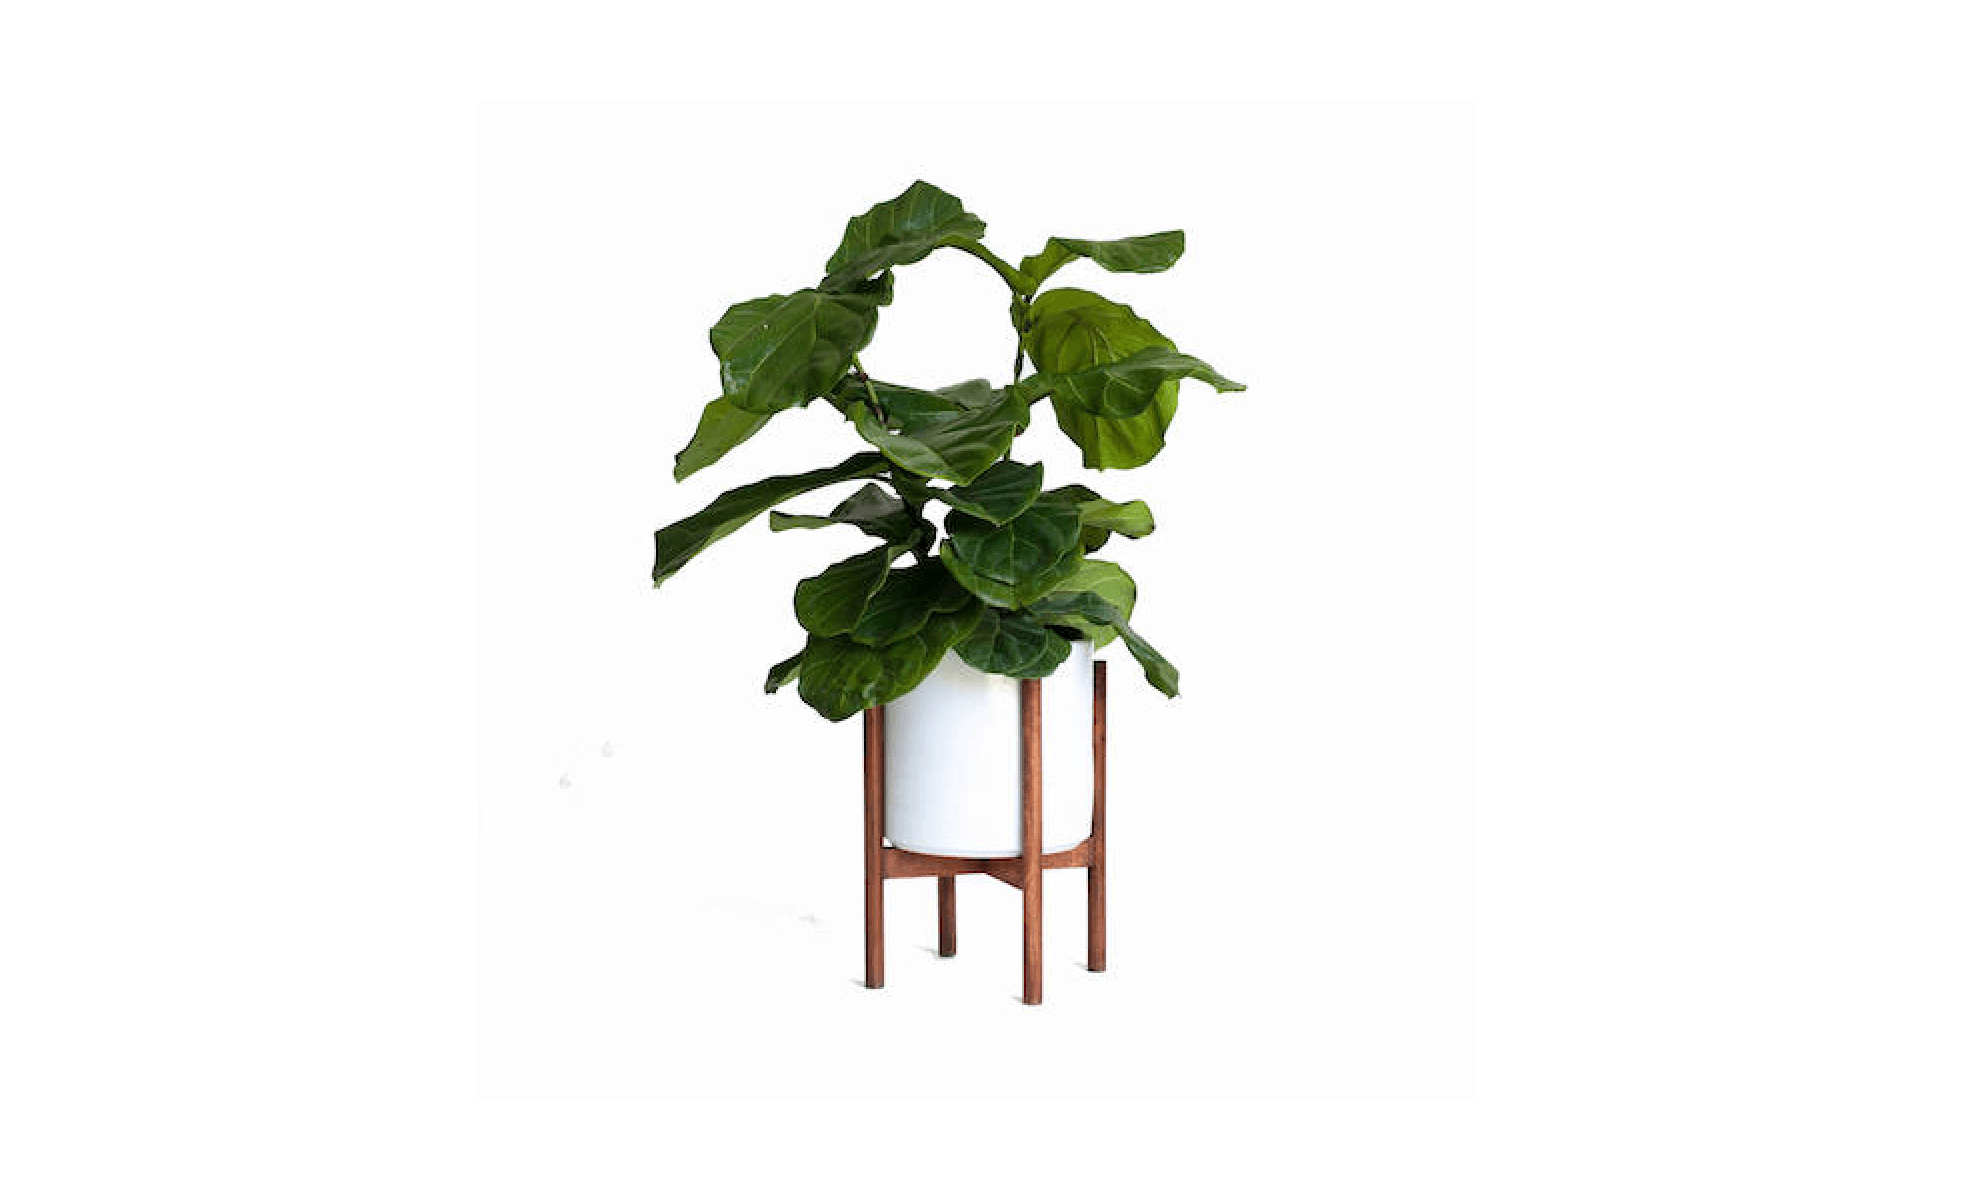 Simple Planters Midcentury Modern Cylinder Planters 10 Stylish Pots For Houseplants